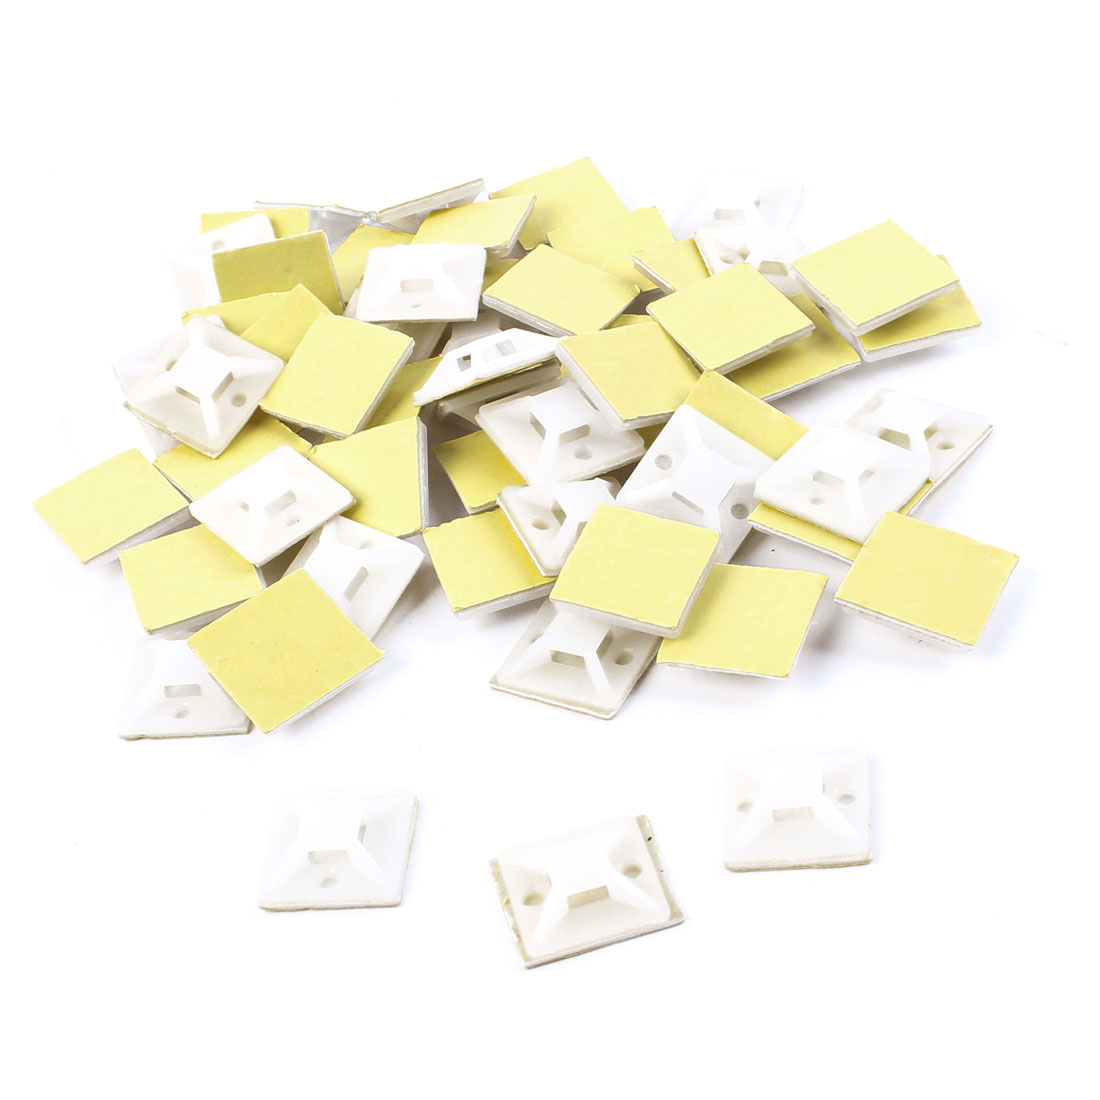 200pcs Fixing Wire 20x20mm 25x25mm Square Shape White Plastic Self-Adhesive Cable Tie Mount Base